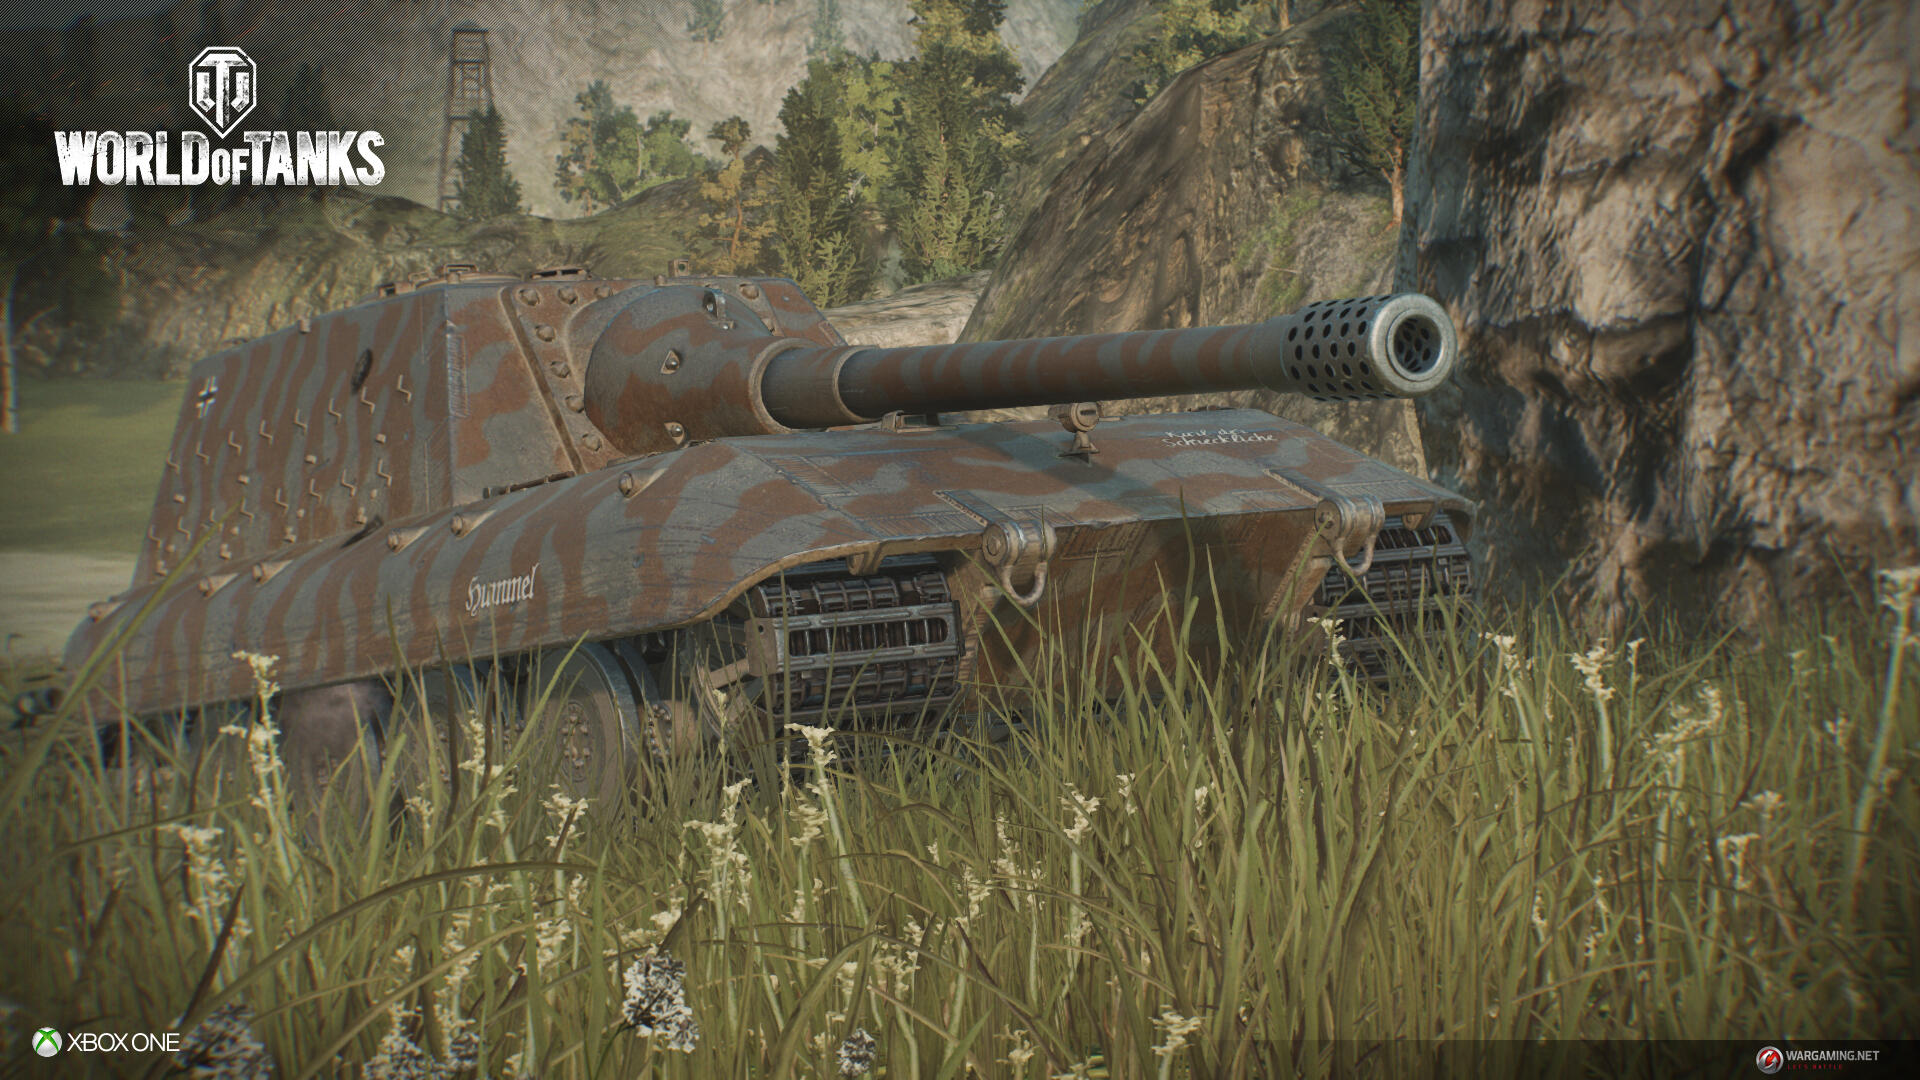 World of Tanks Xbox One Review: Thinking Man's Shooter